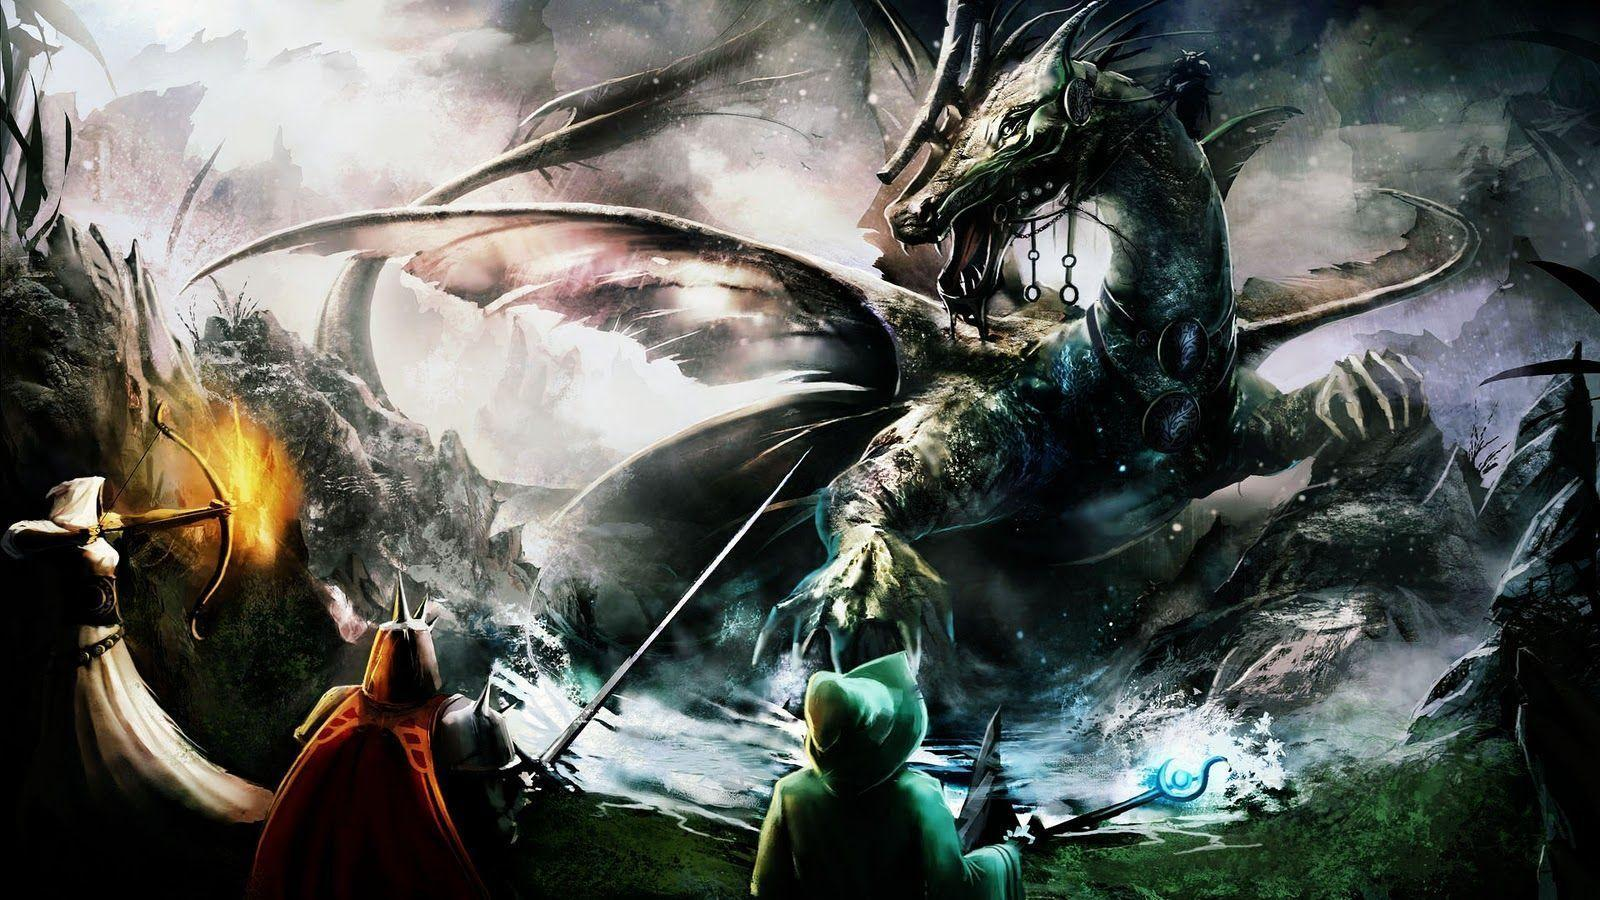 Wallpapers For > Dragon Wallpapers Hd Widescreen